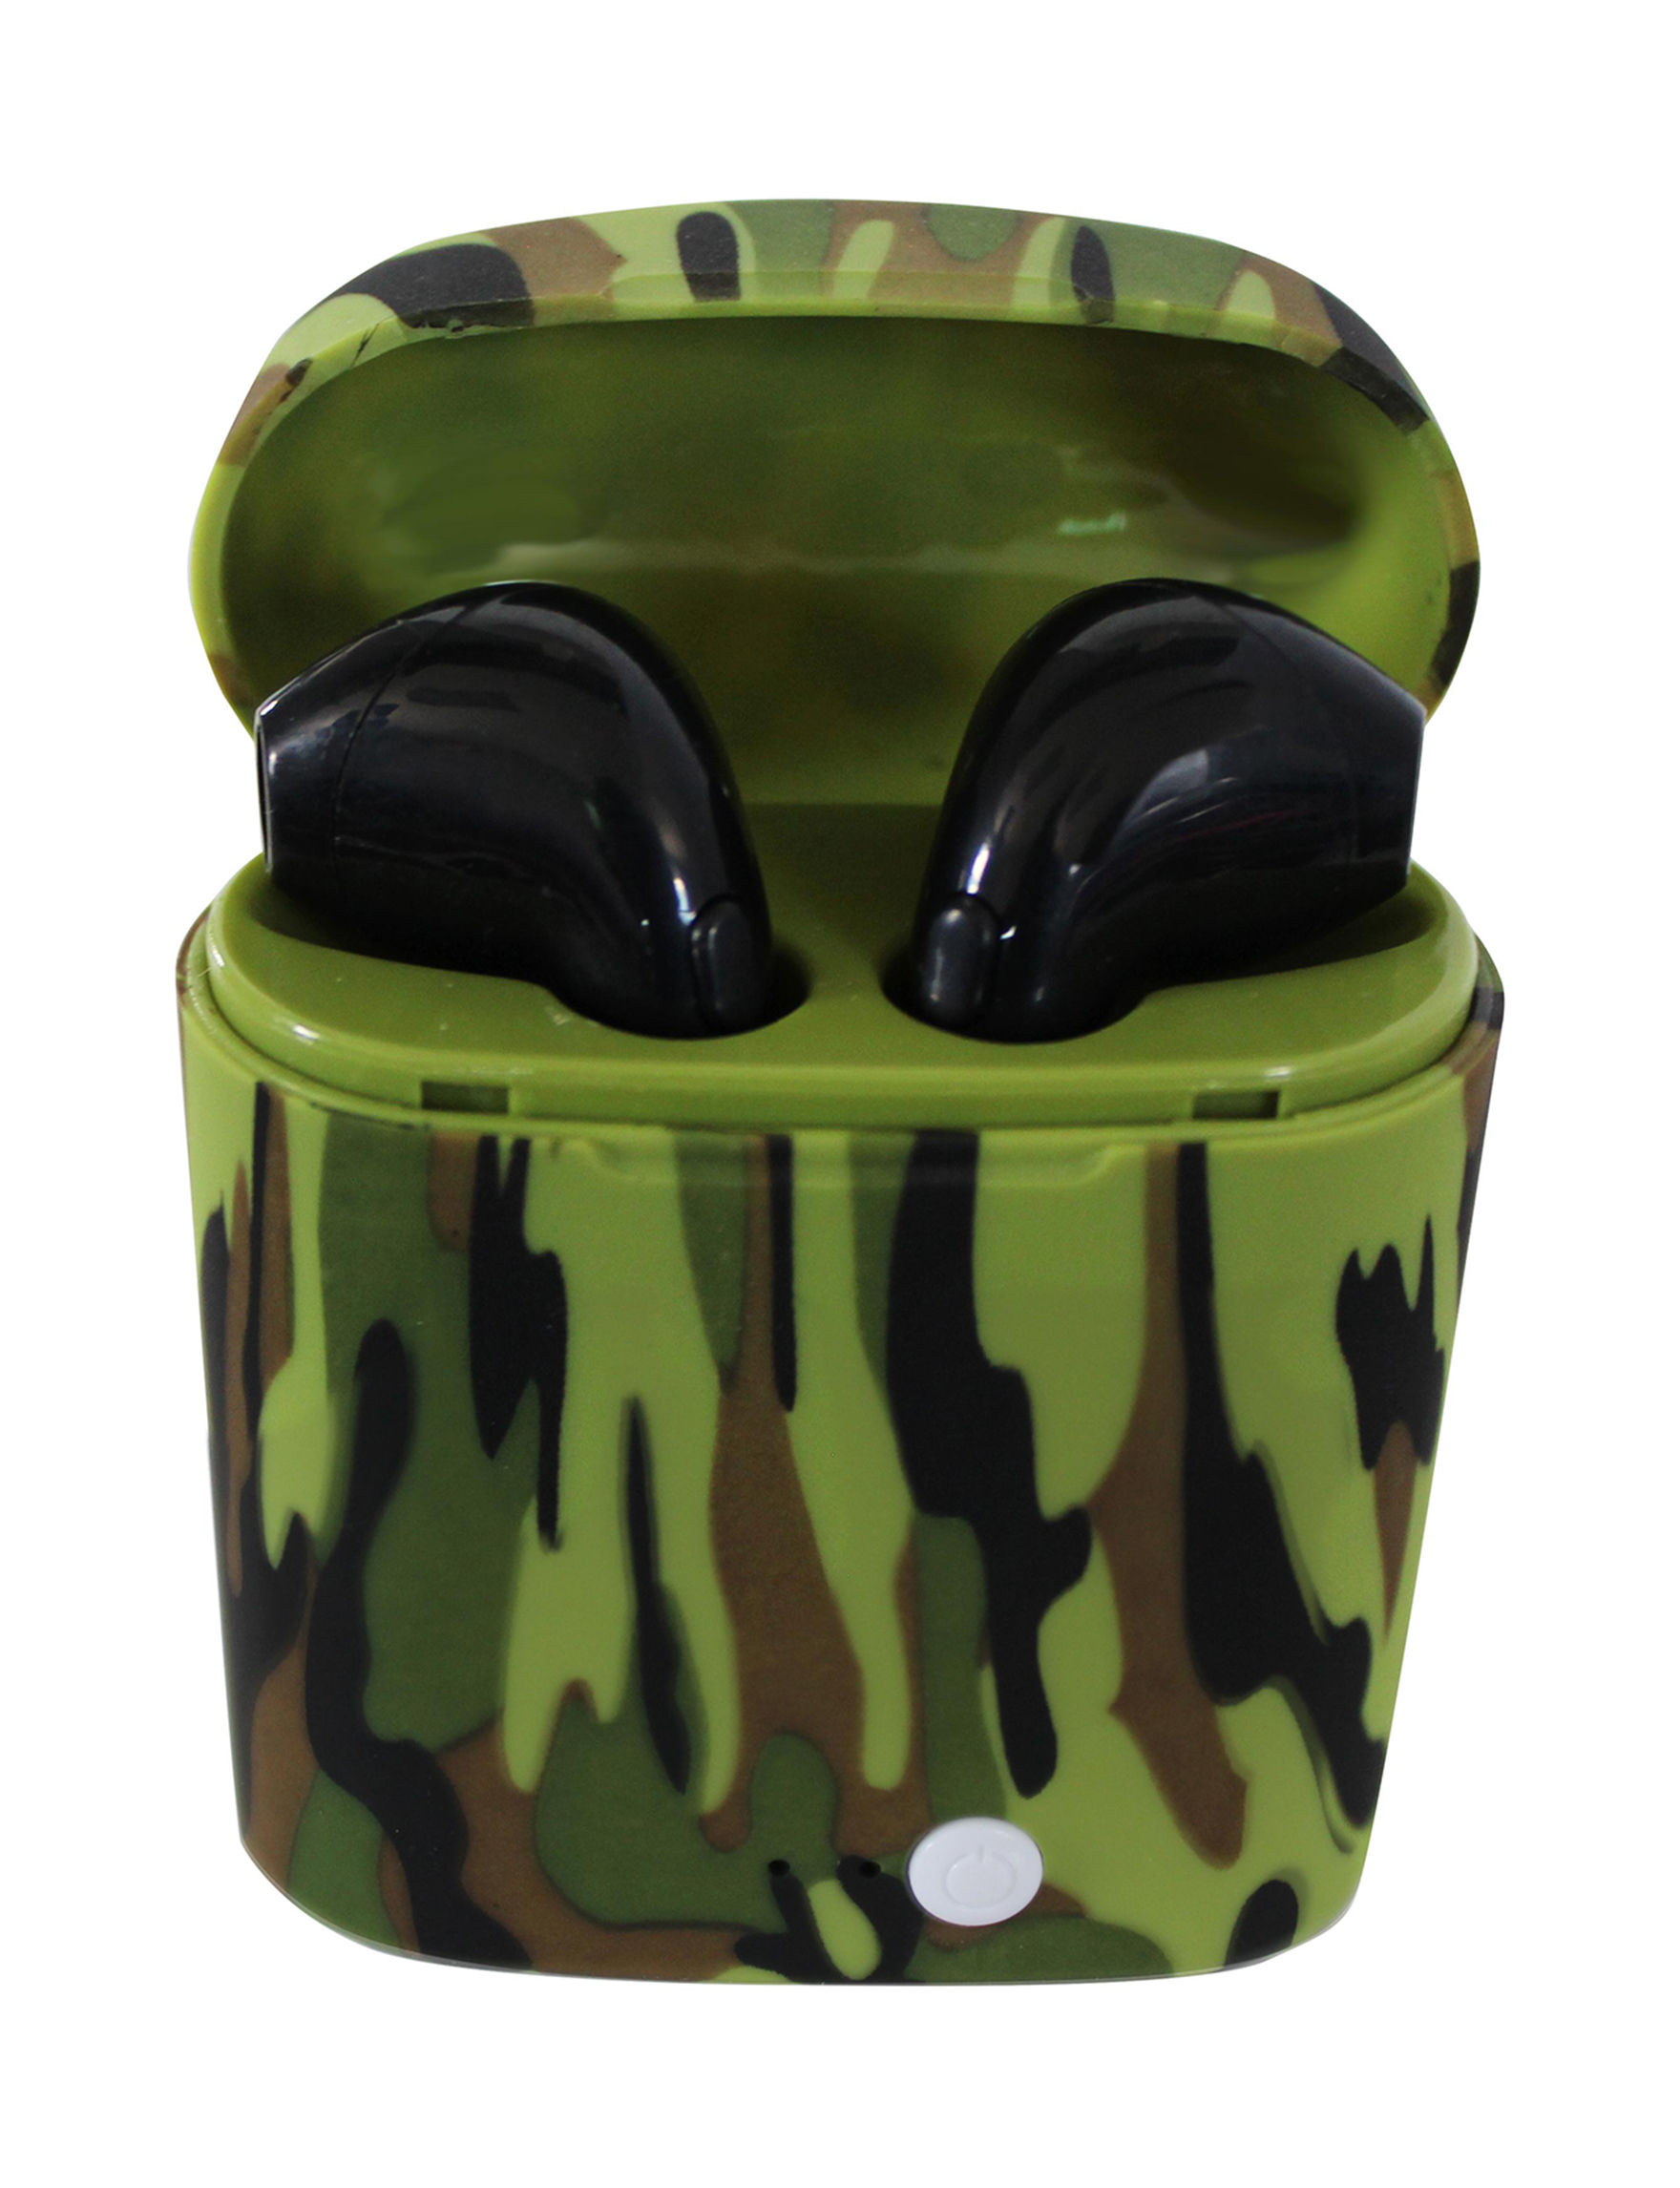 Xtreme Time Green Headphones Tech Accessories